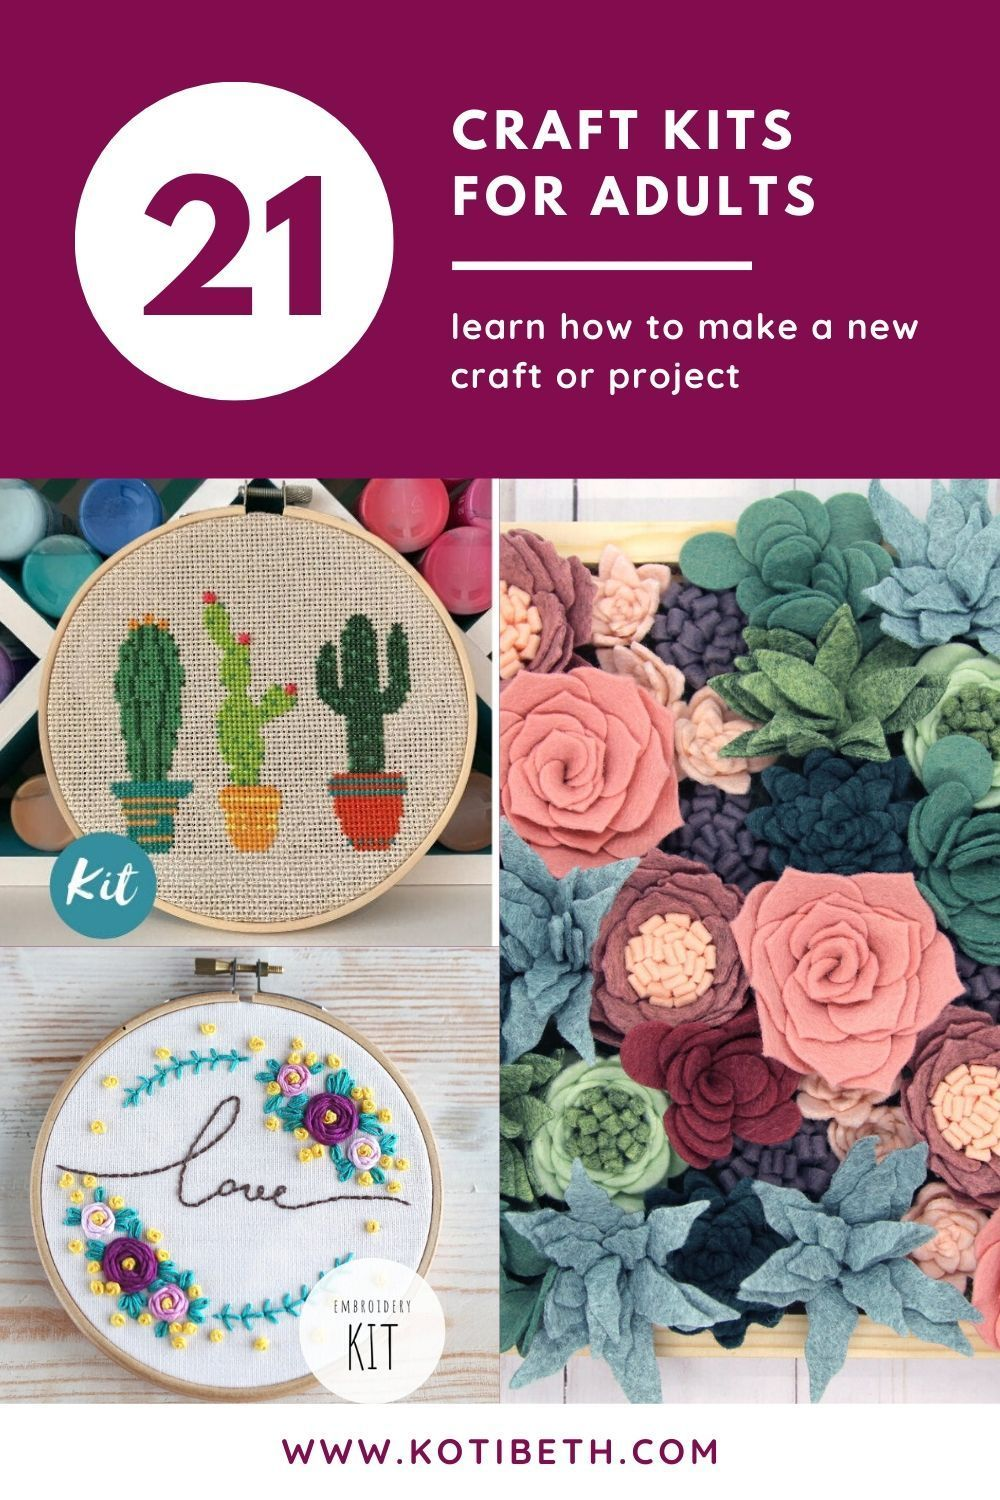 21 Of The Best Craft Kits For Adults In 2020 Monthly Crafts Fun Easy Crafts Crafts To Make And Sell